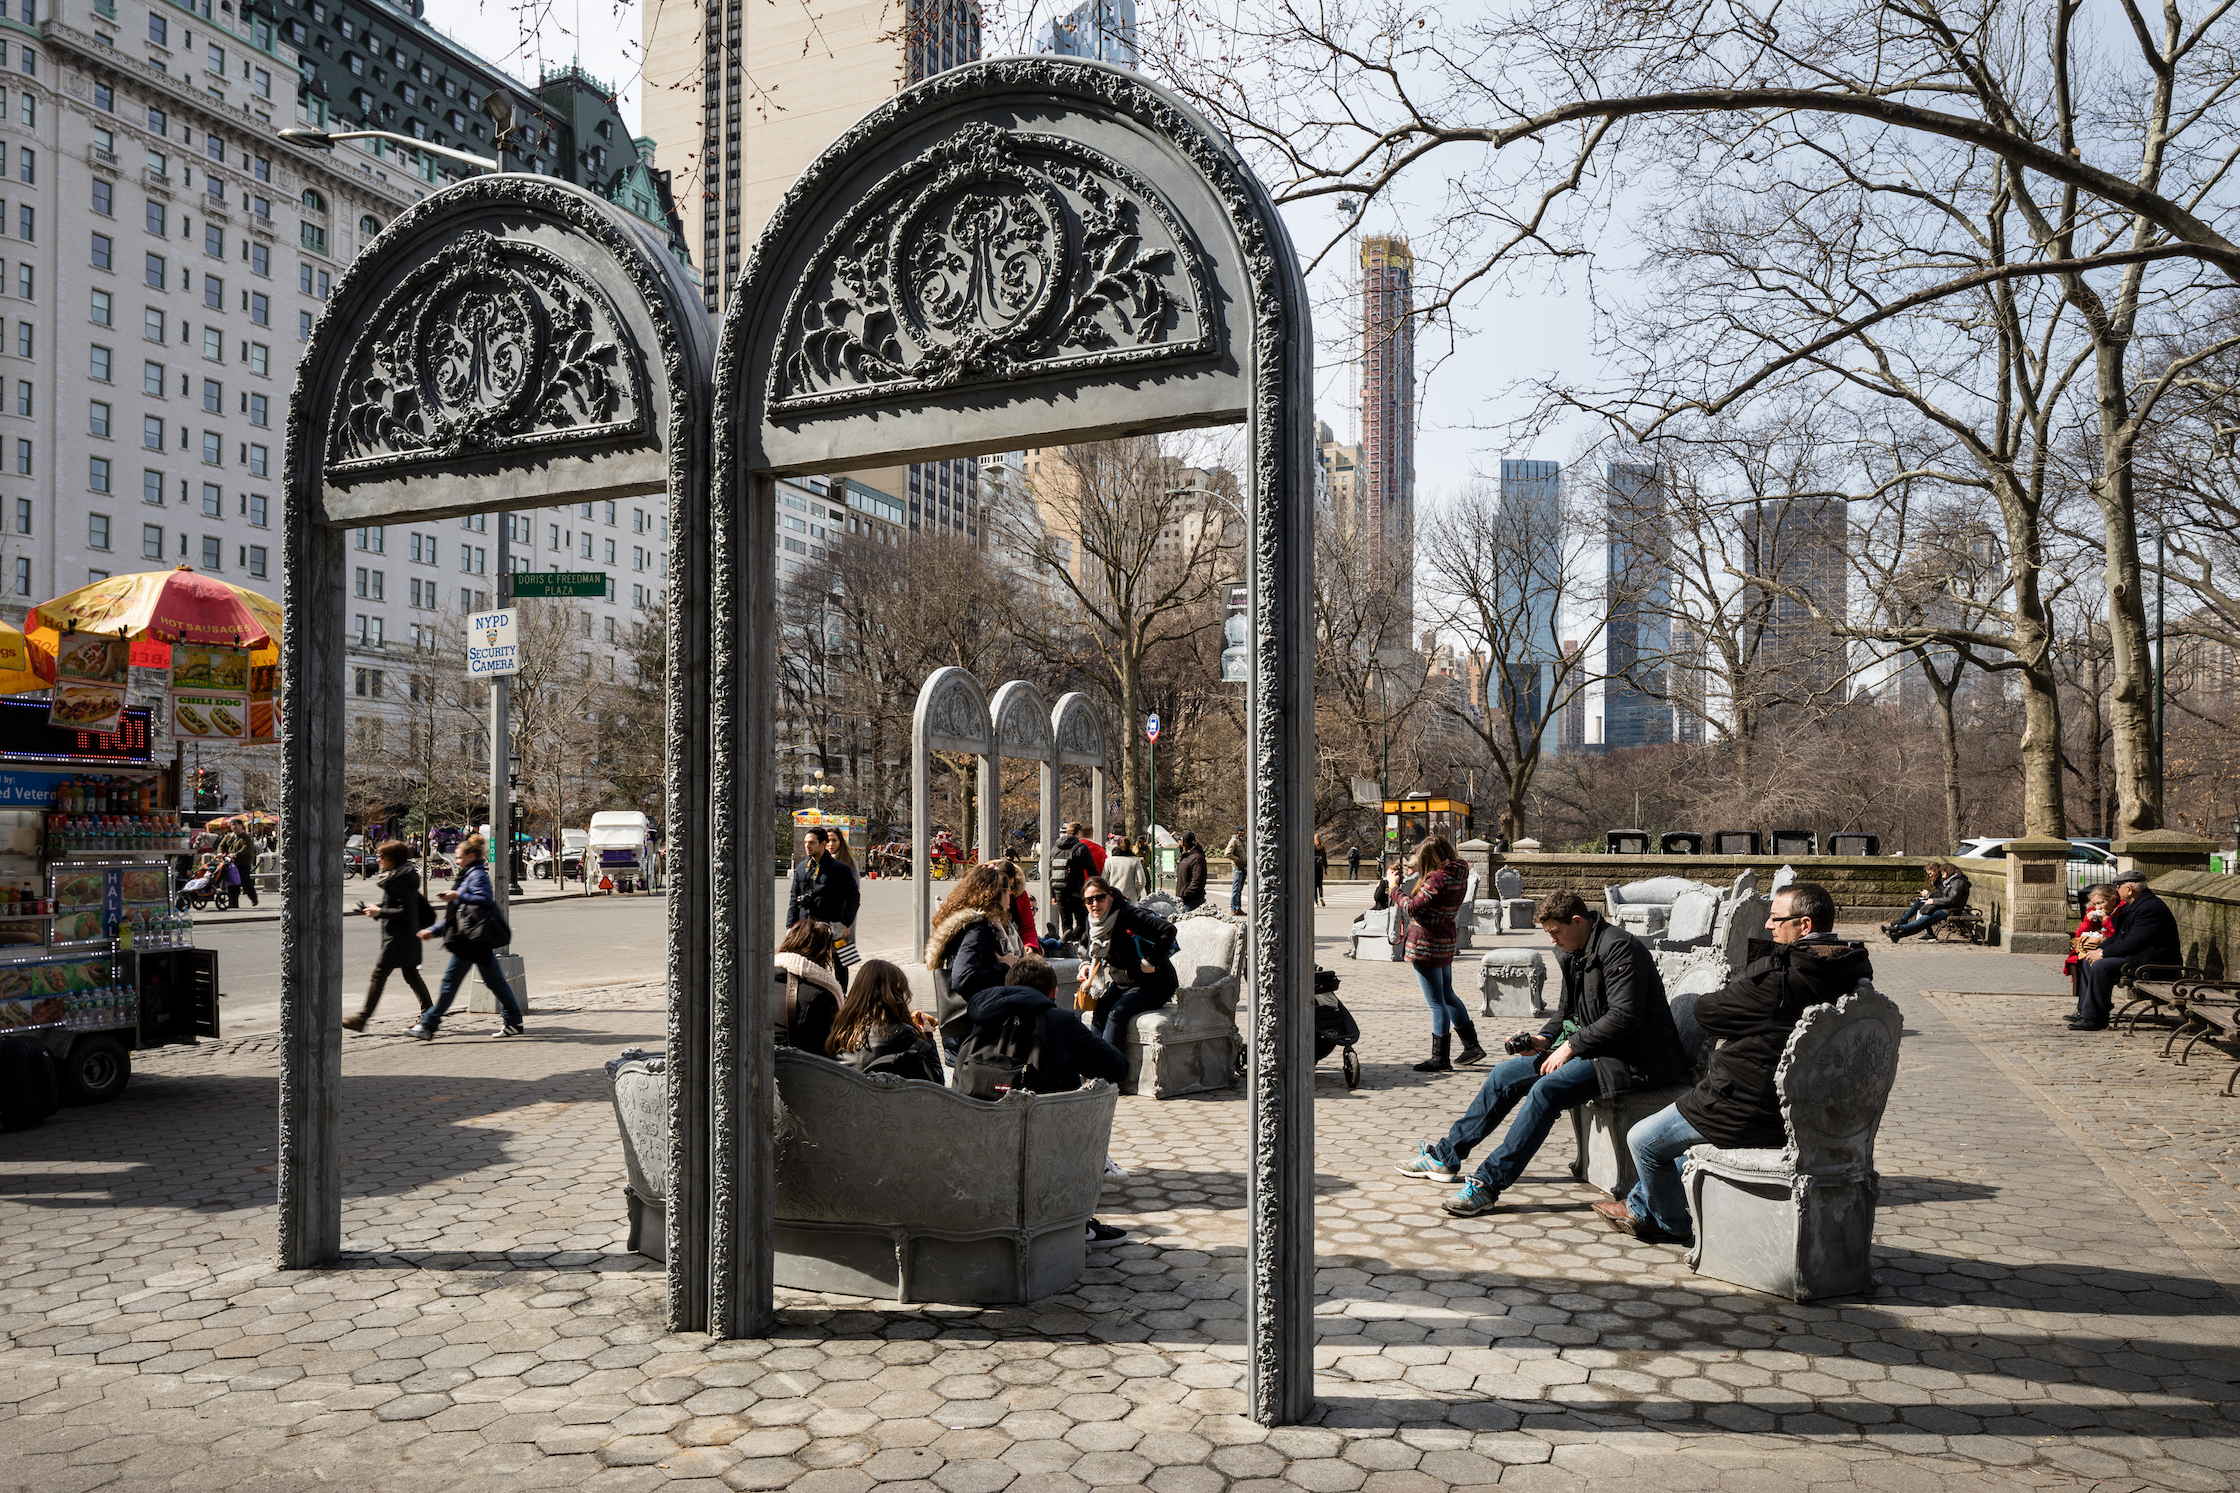 Liz Glynn. Installation view, Open    House , 2016. Cast Concrete. Installation approximately 83 x 44 x 13 feet. Organized for Boston by Now + There, Open House was commissioned and originally presented in 2017 by Public Art Fund in Central Park,New York in cooperation with the artist and Paula Cooper Gallery.